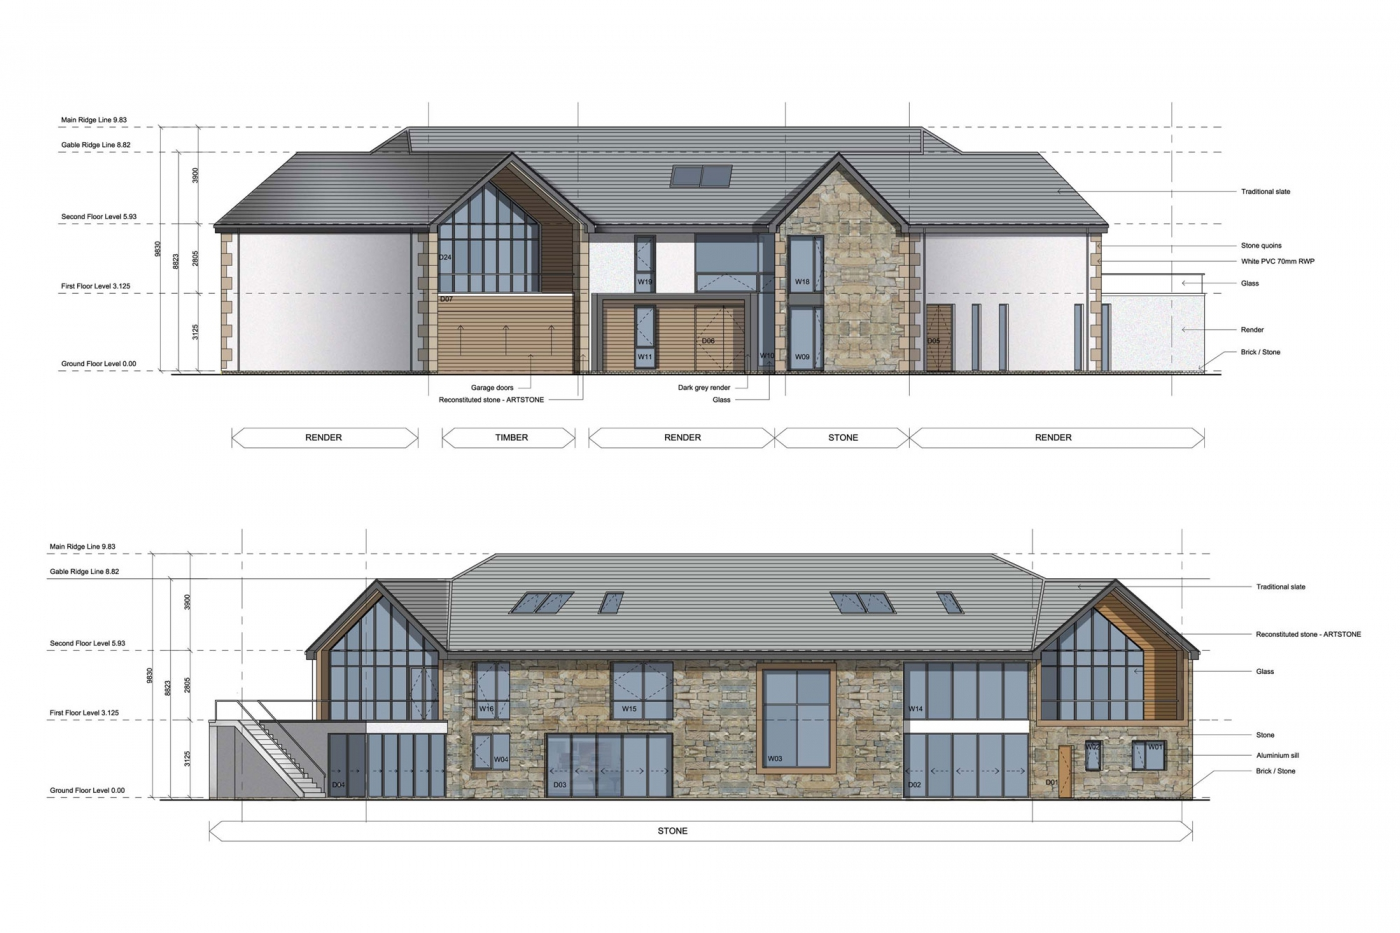 A Bespoke Wynyard Home submitted for planning